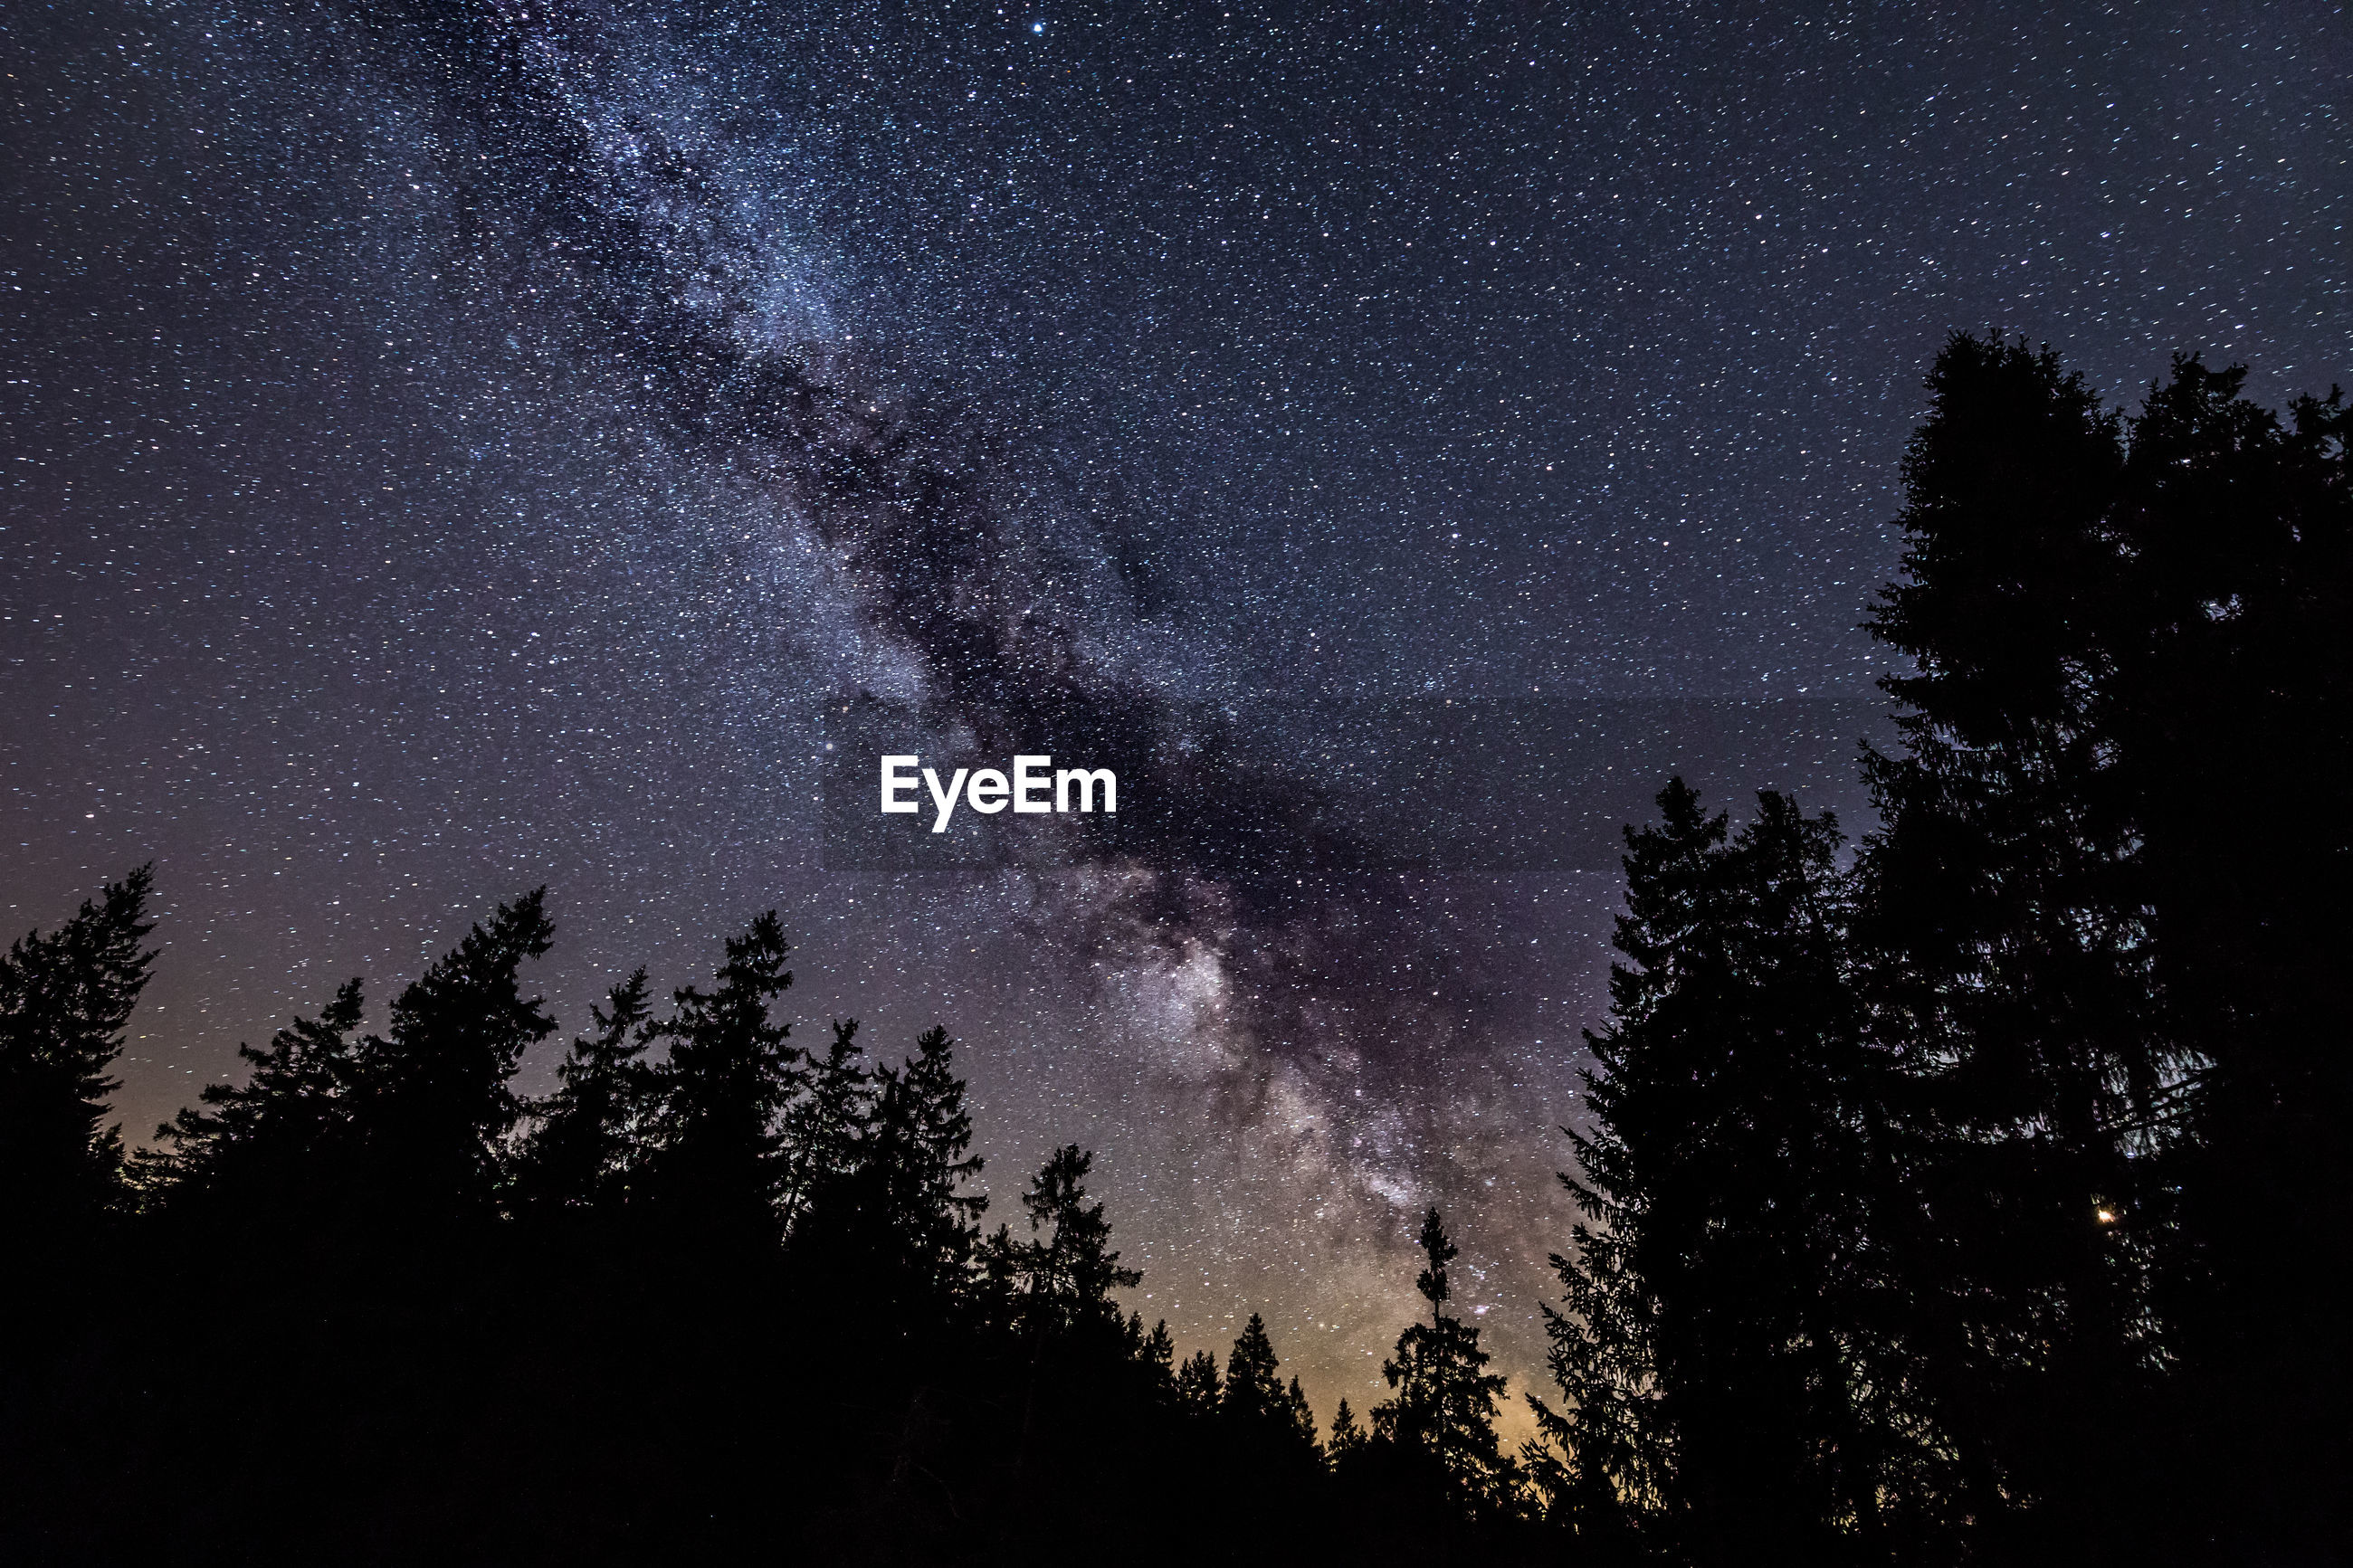 LOW ANGLE VIEW OF SILHOUETTE TREES AGAINST STAR FIELD